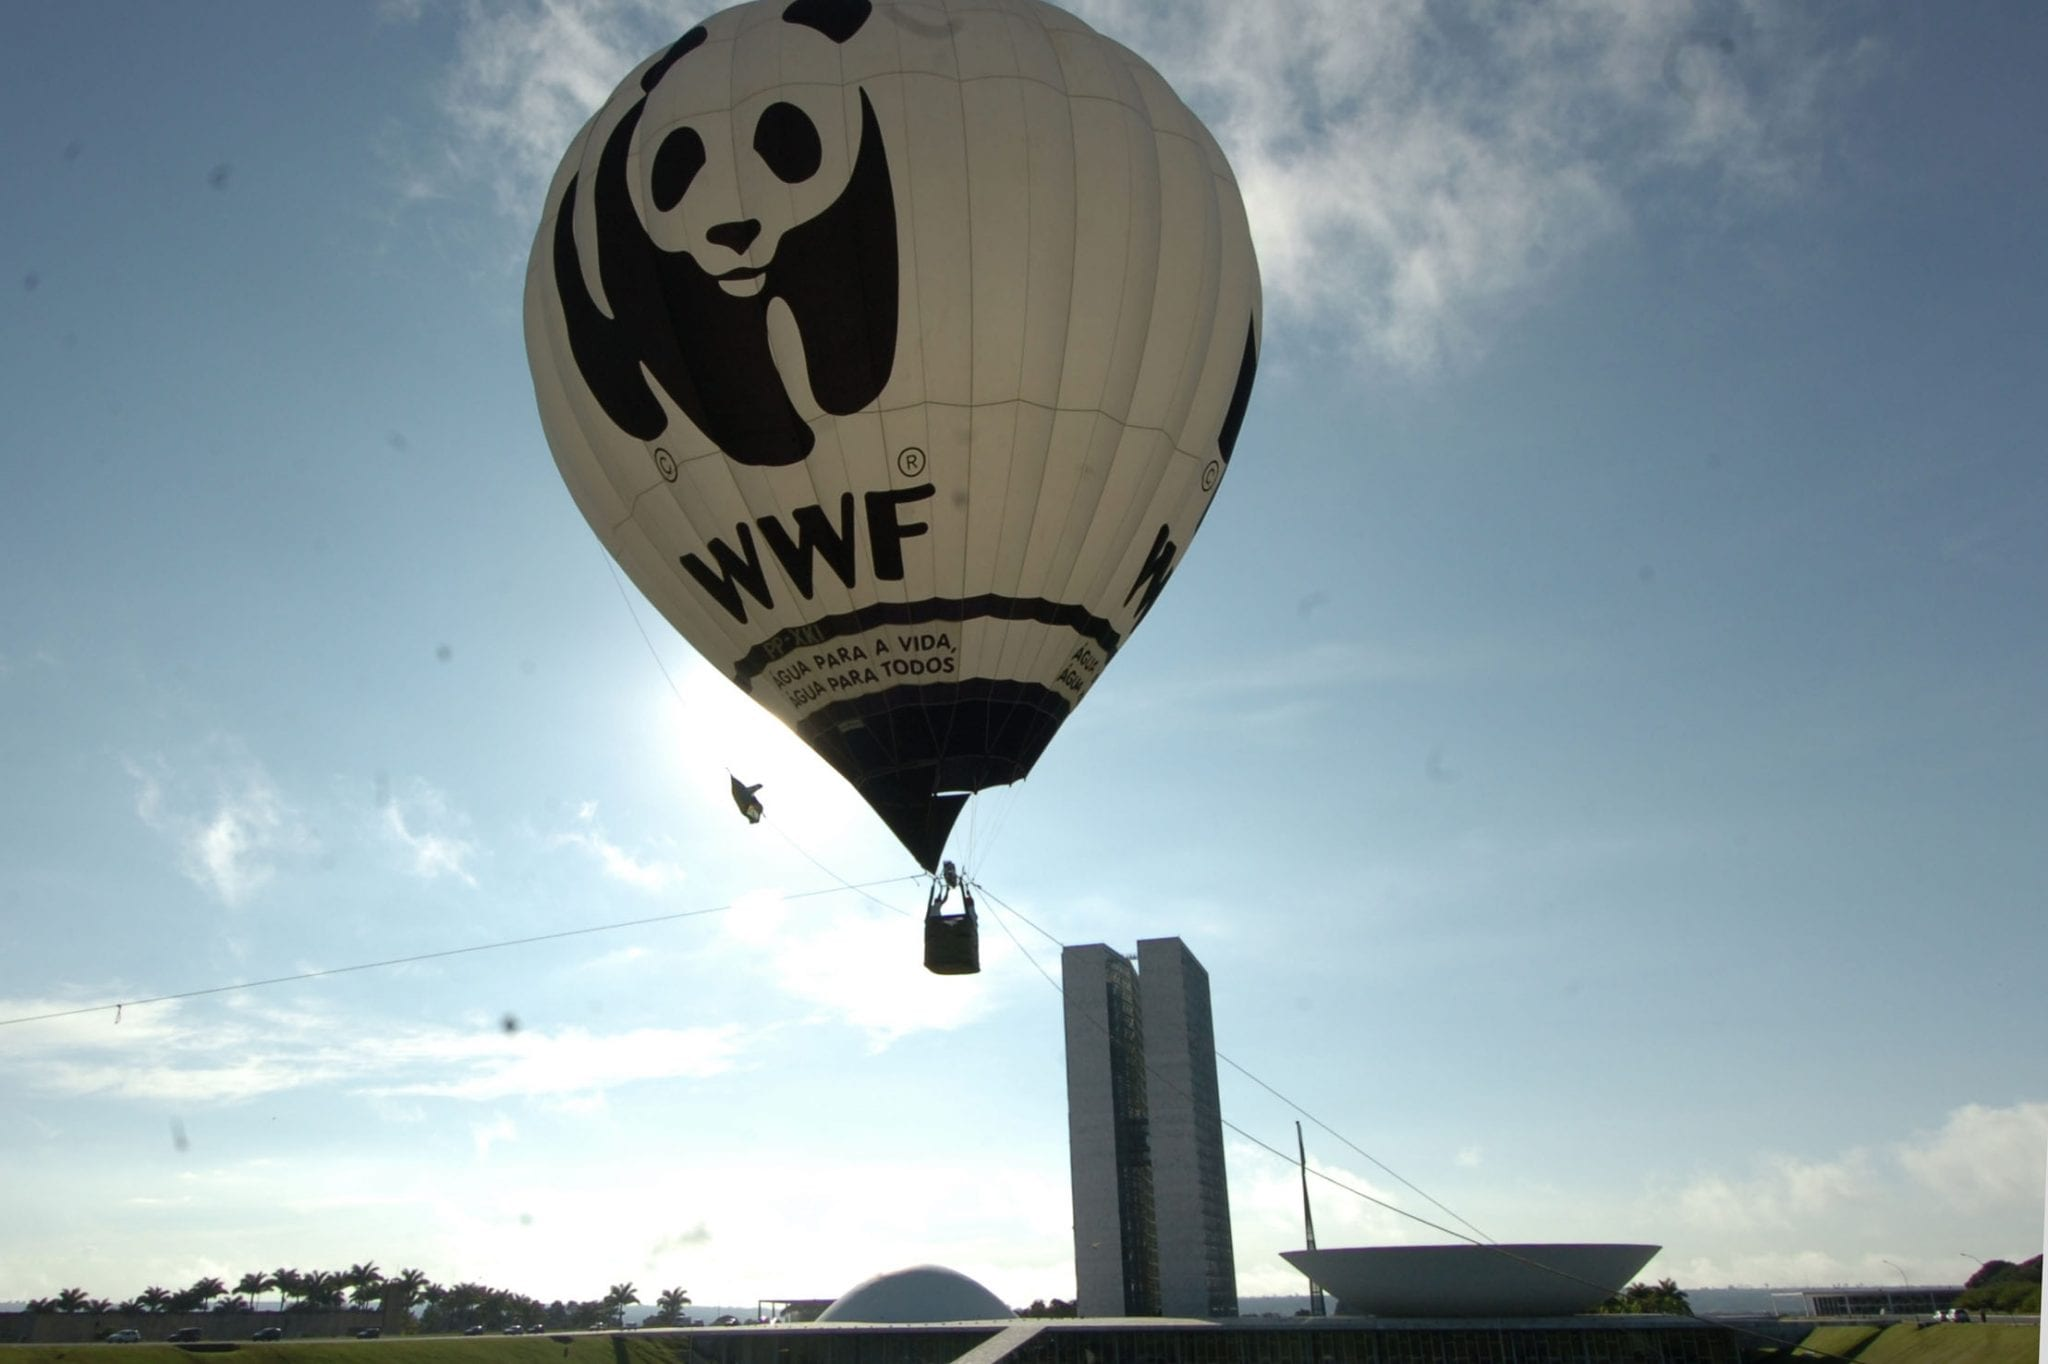 Why Should We Save The Giant Panda- WWF Hot Air Balloon